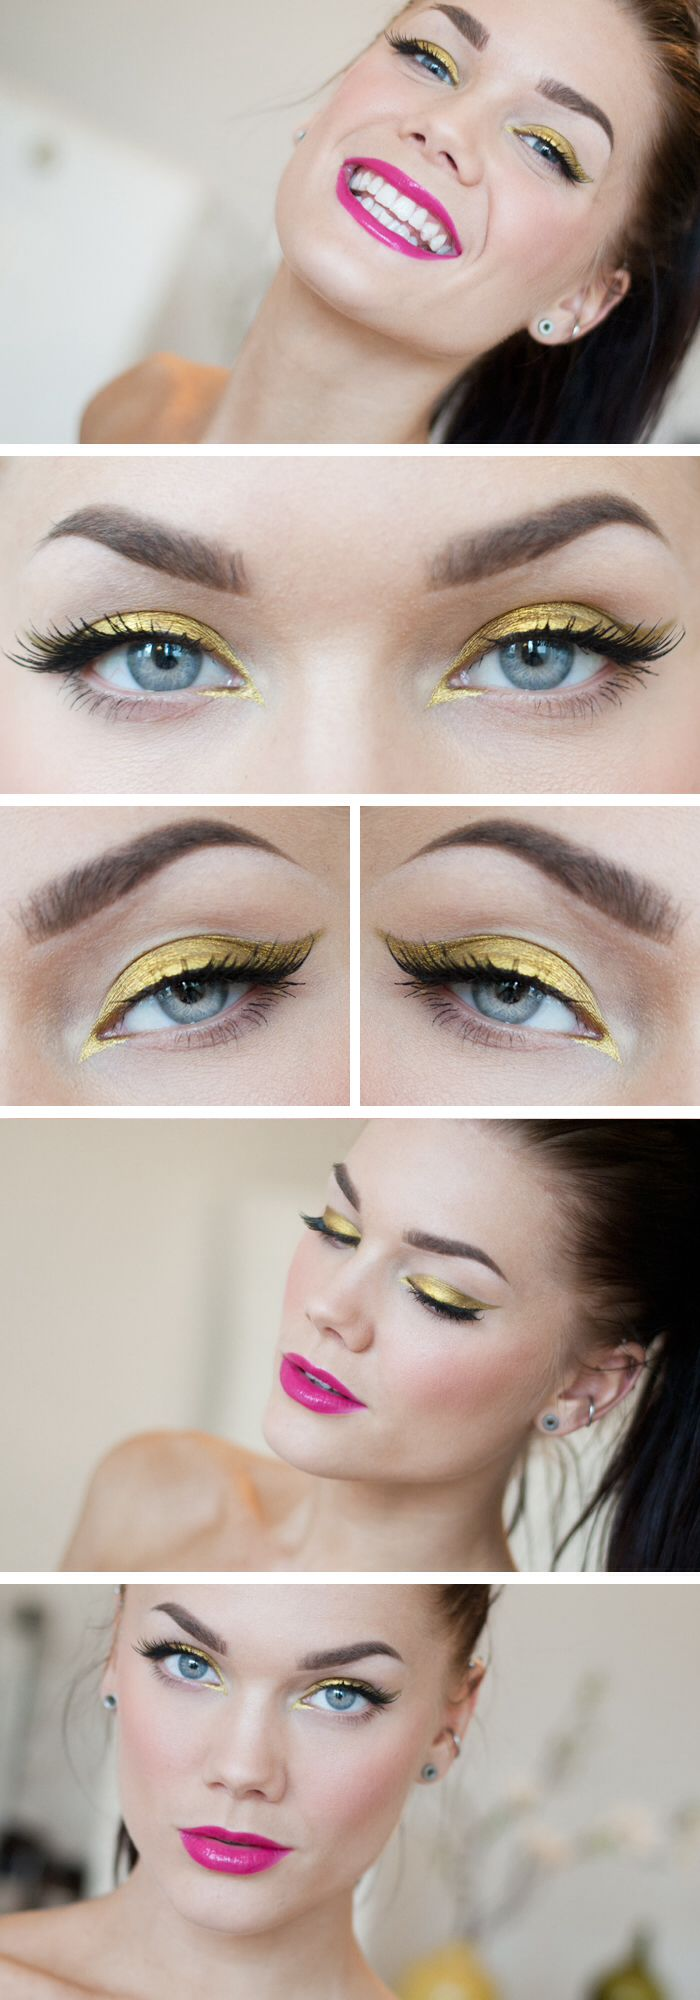 Give me gold beauty in pinterest maquillaje